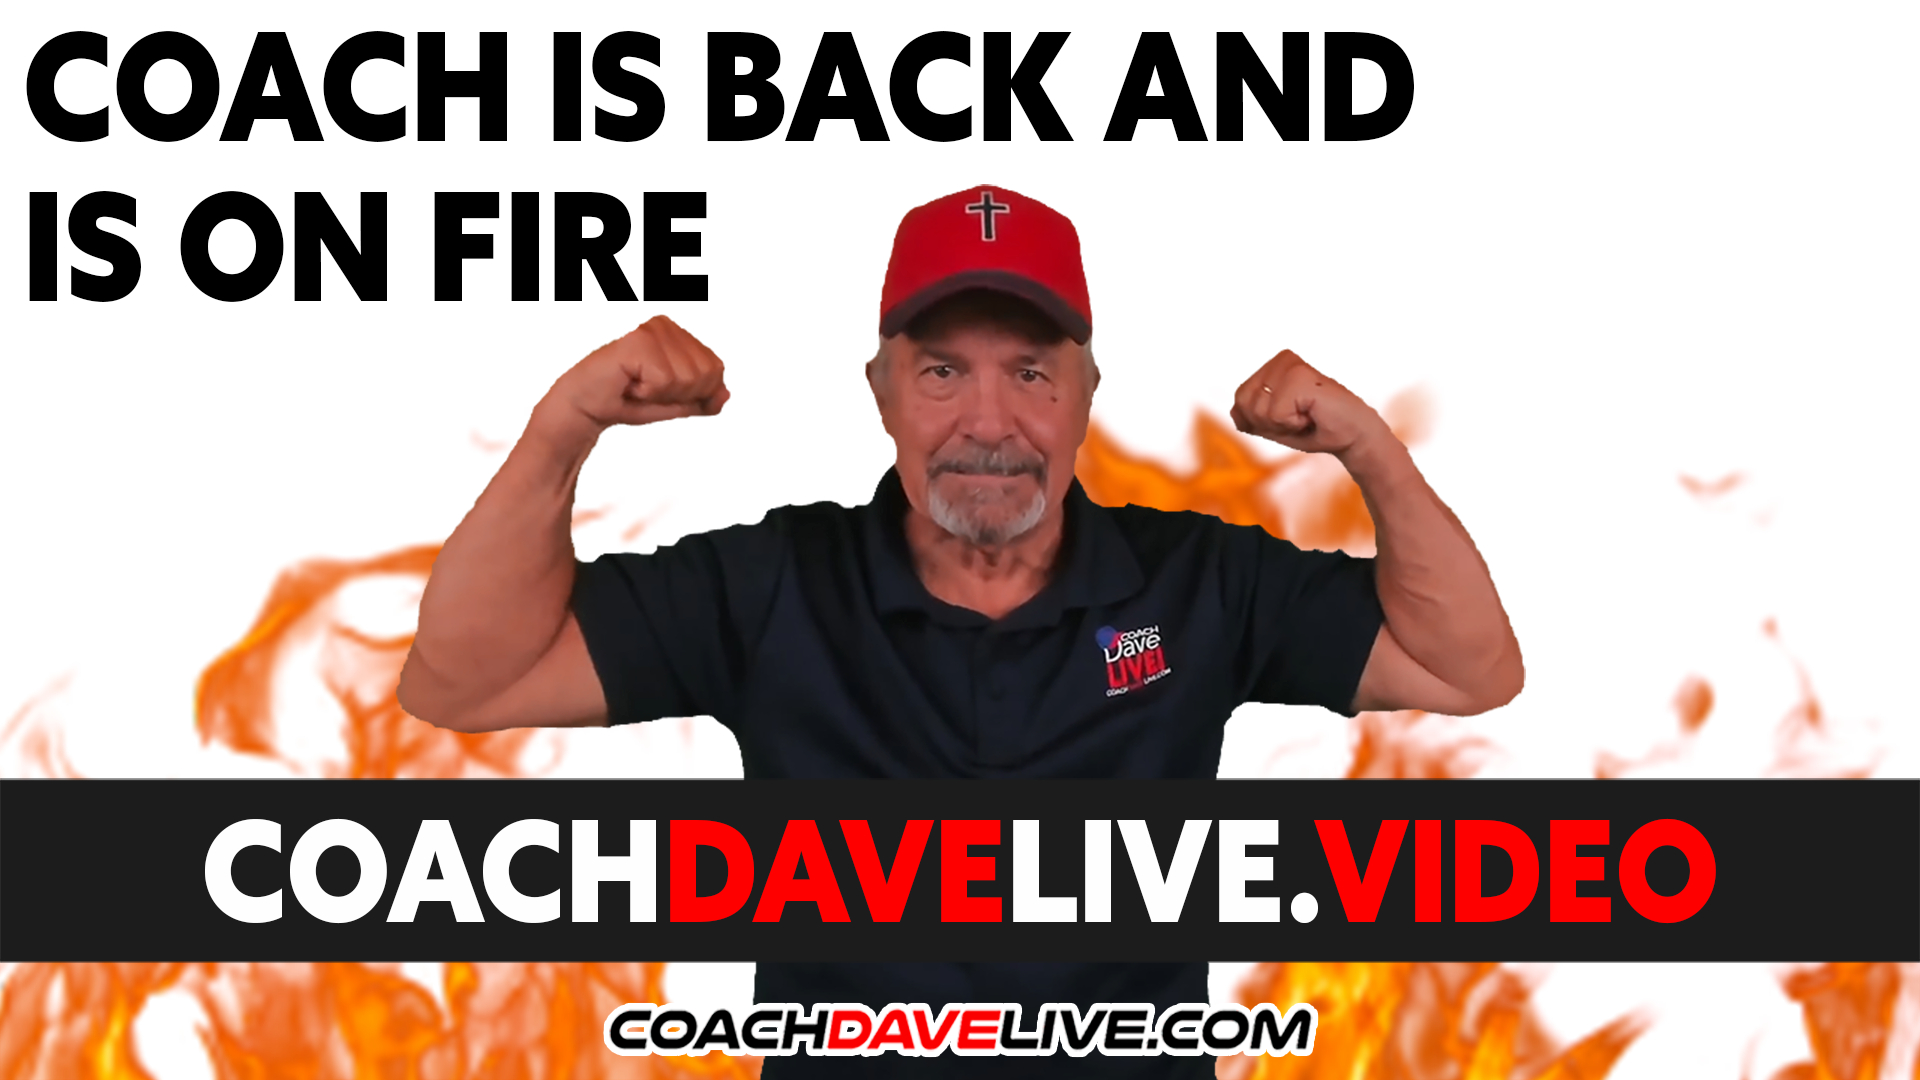 Coach Dave LIVE | 9-15-2021 | COACH IS BACK AND IS ON FIRE!